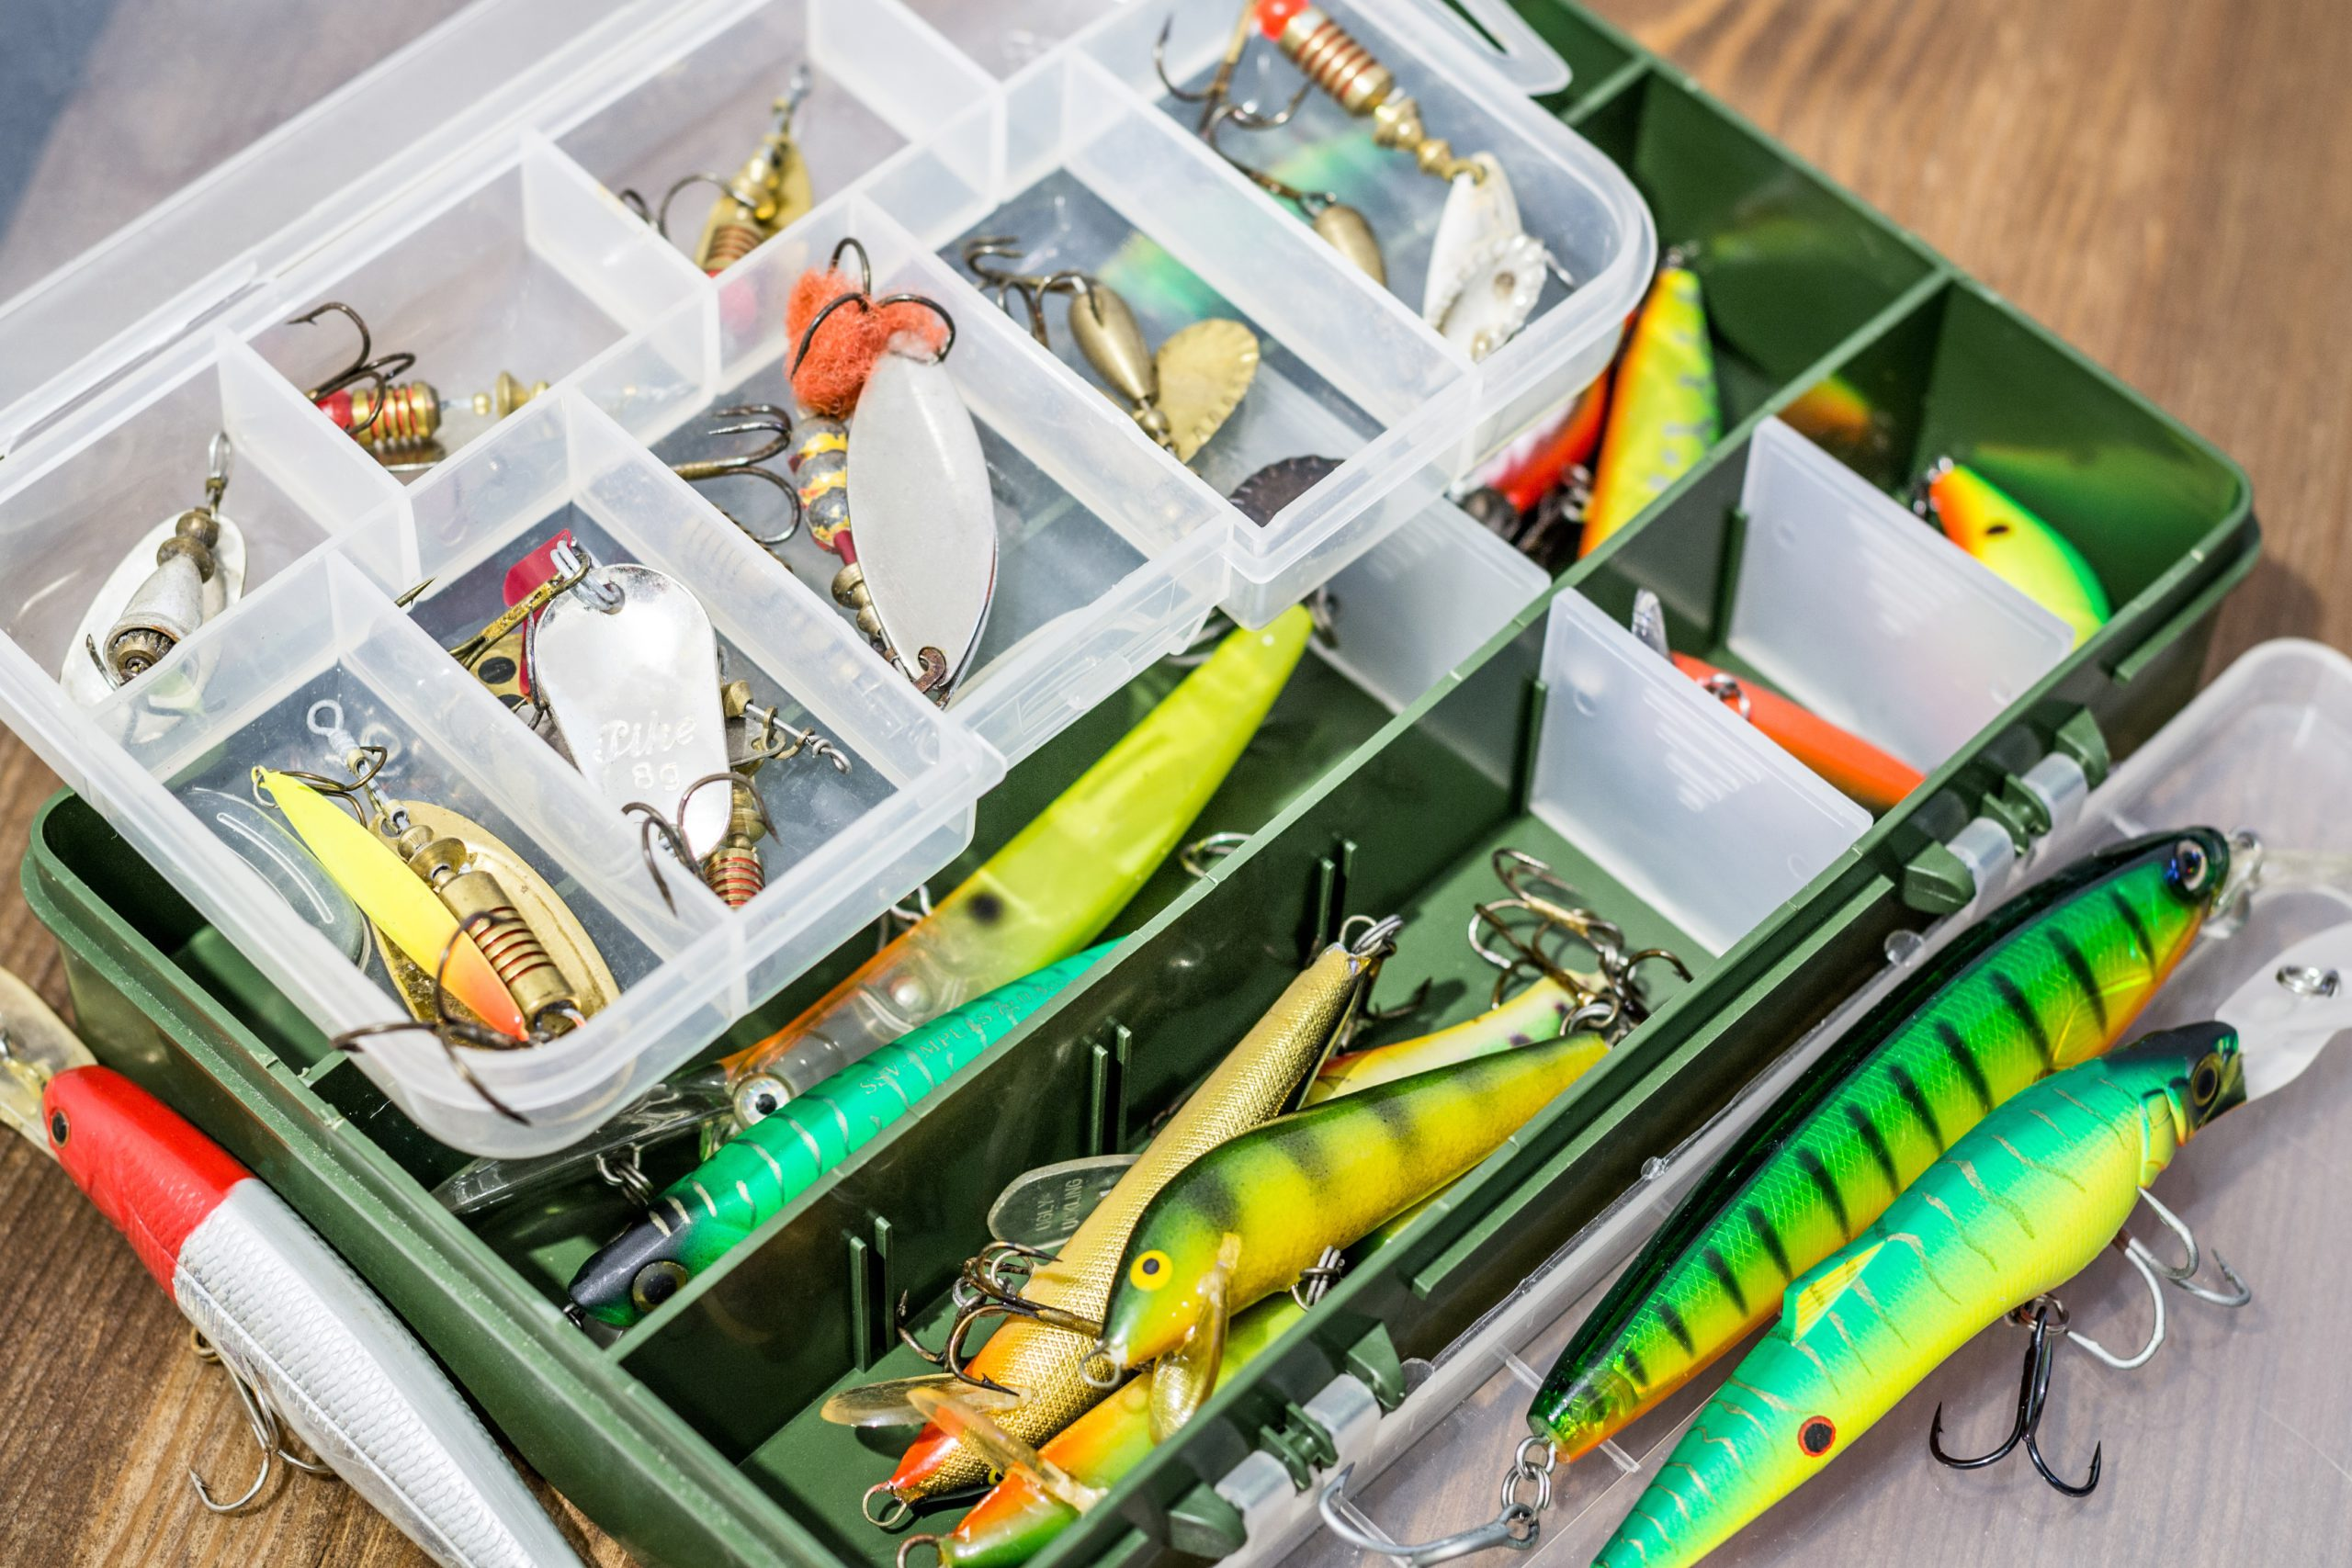 Tackle box loaded with different lures and hooks.